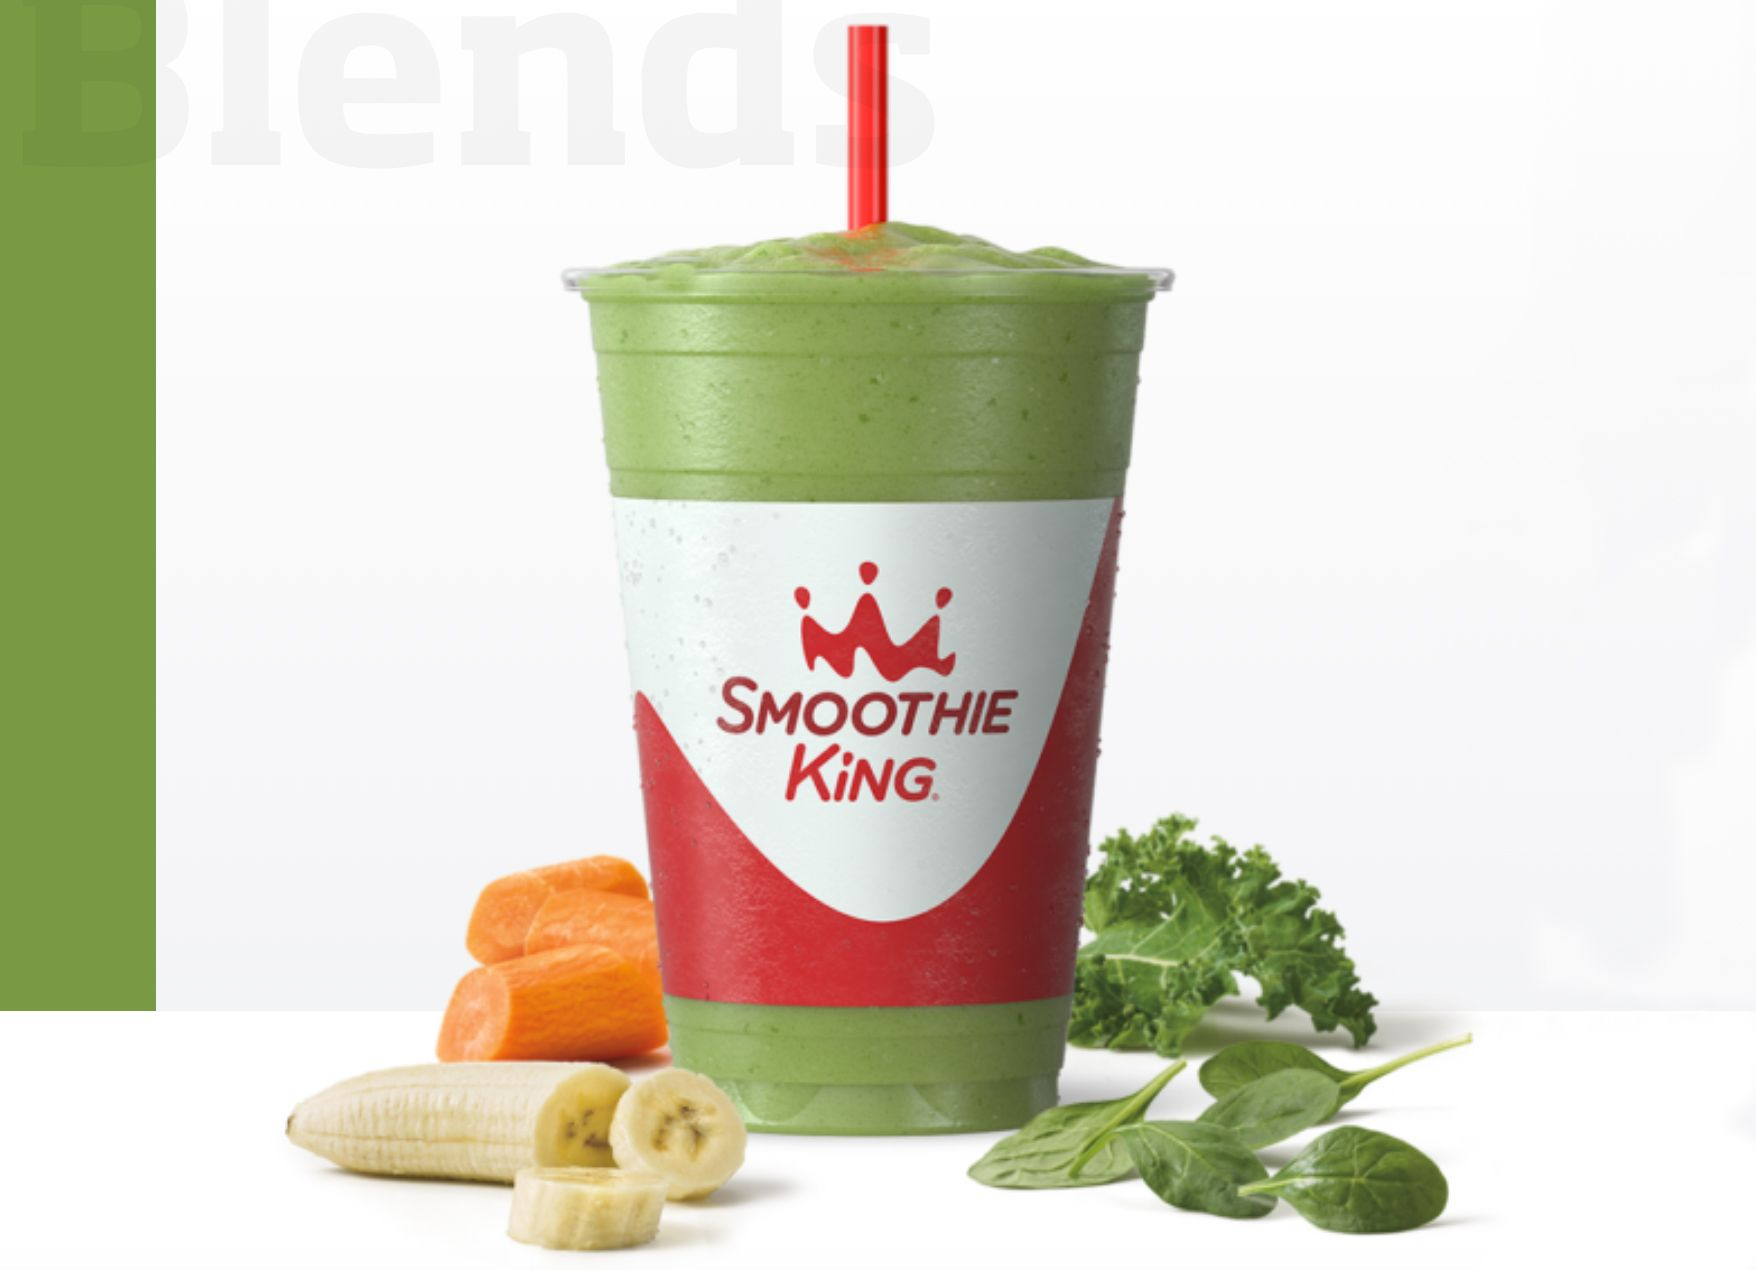 Smoothie King Offers New Immune Builder Veggie Superfood Smoothie